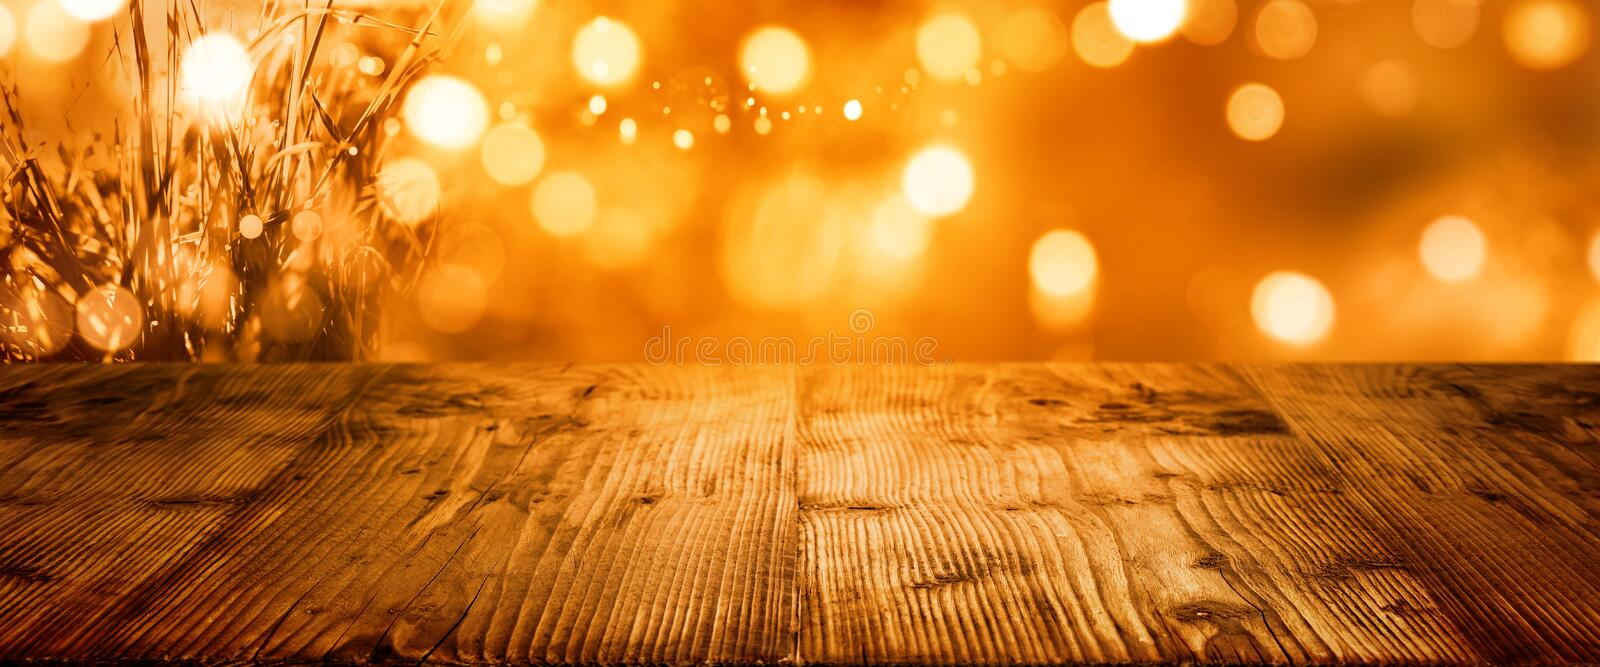 Autumn background for thanksgiving with table royalty free stock photography